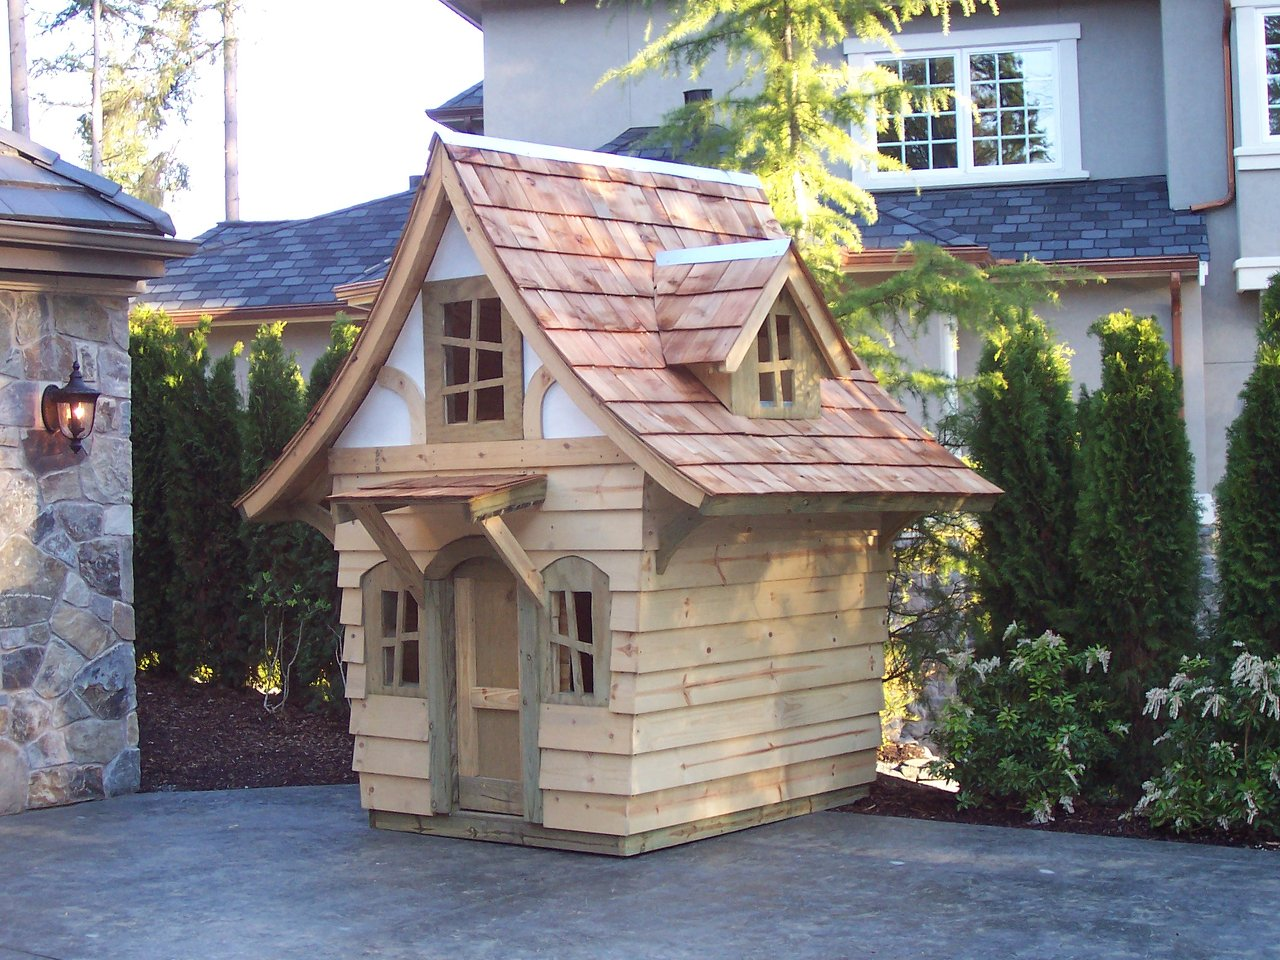 Storybook Cottage - $7422